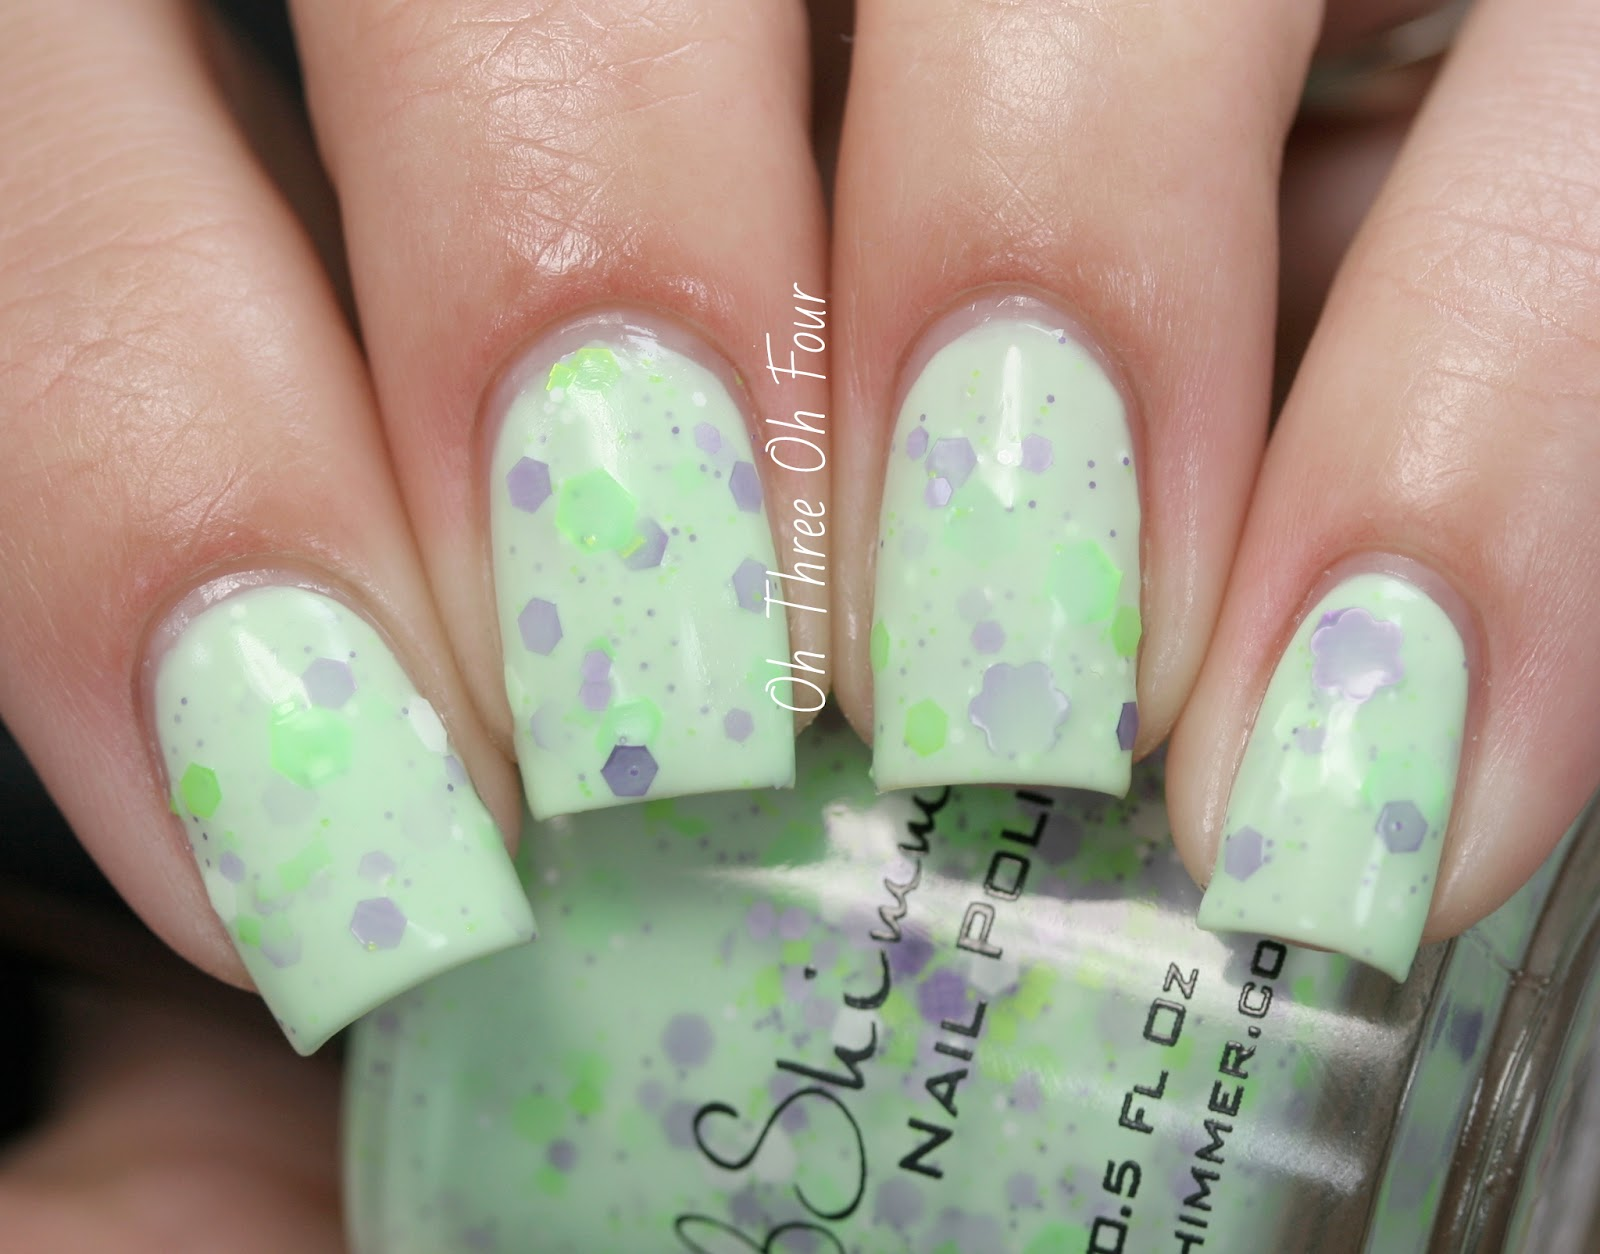 KBShimmer Daisy About You swatch